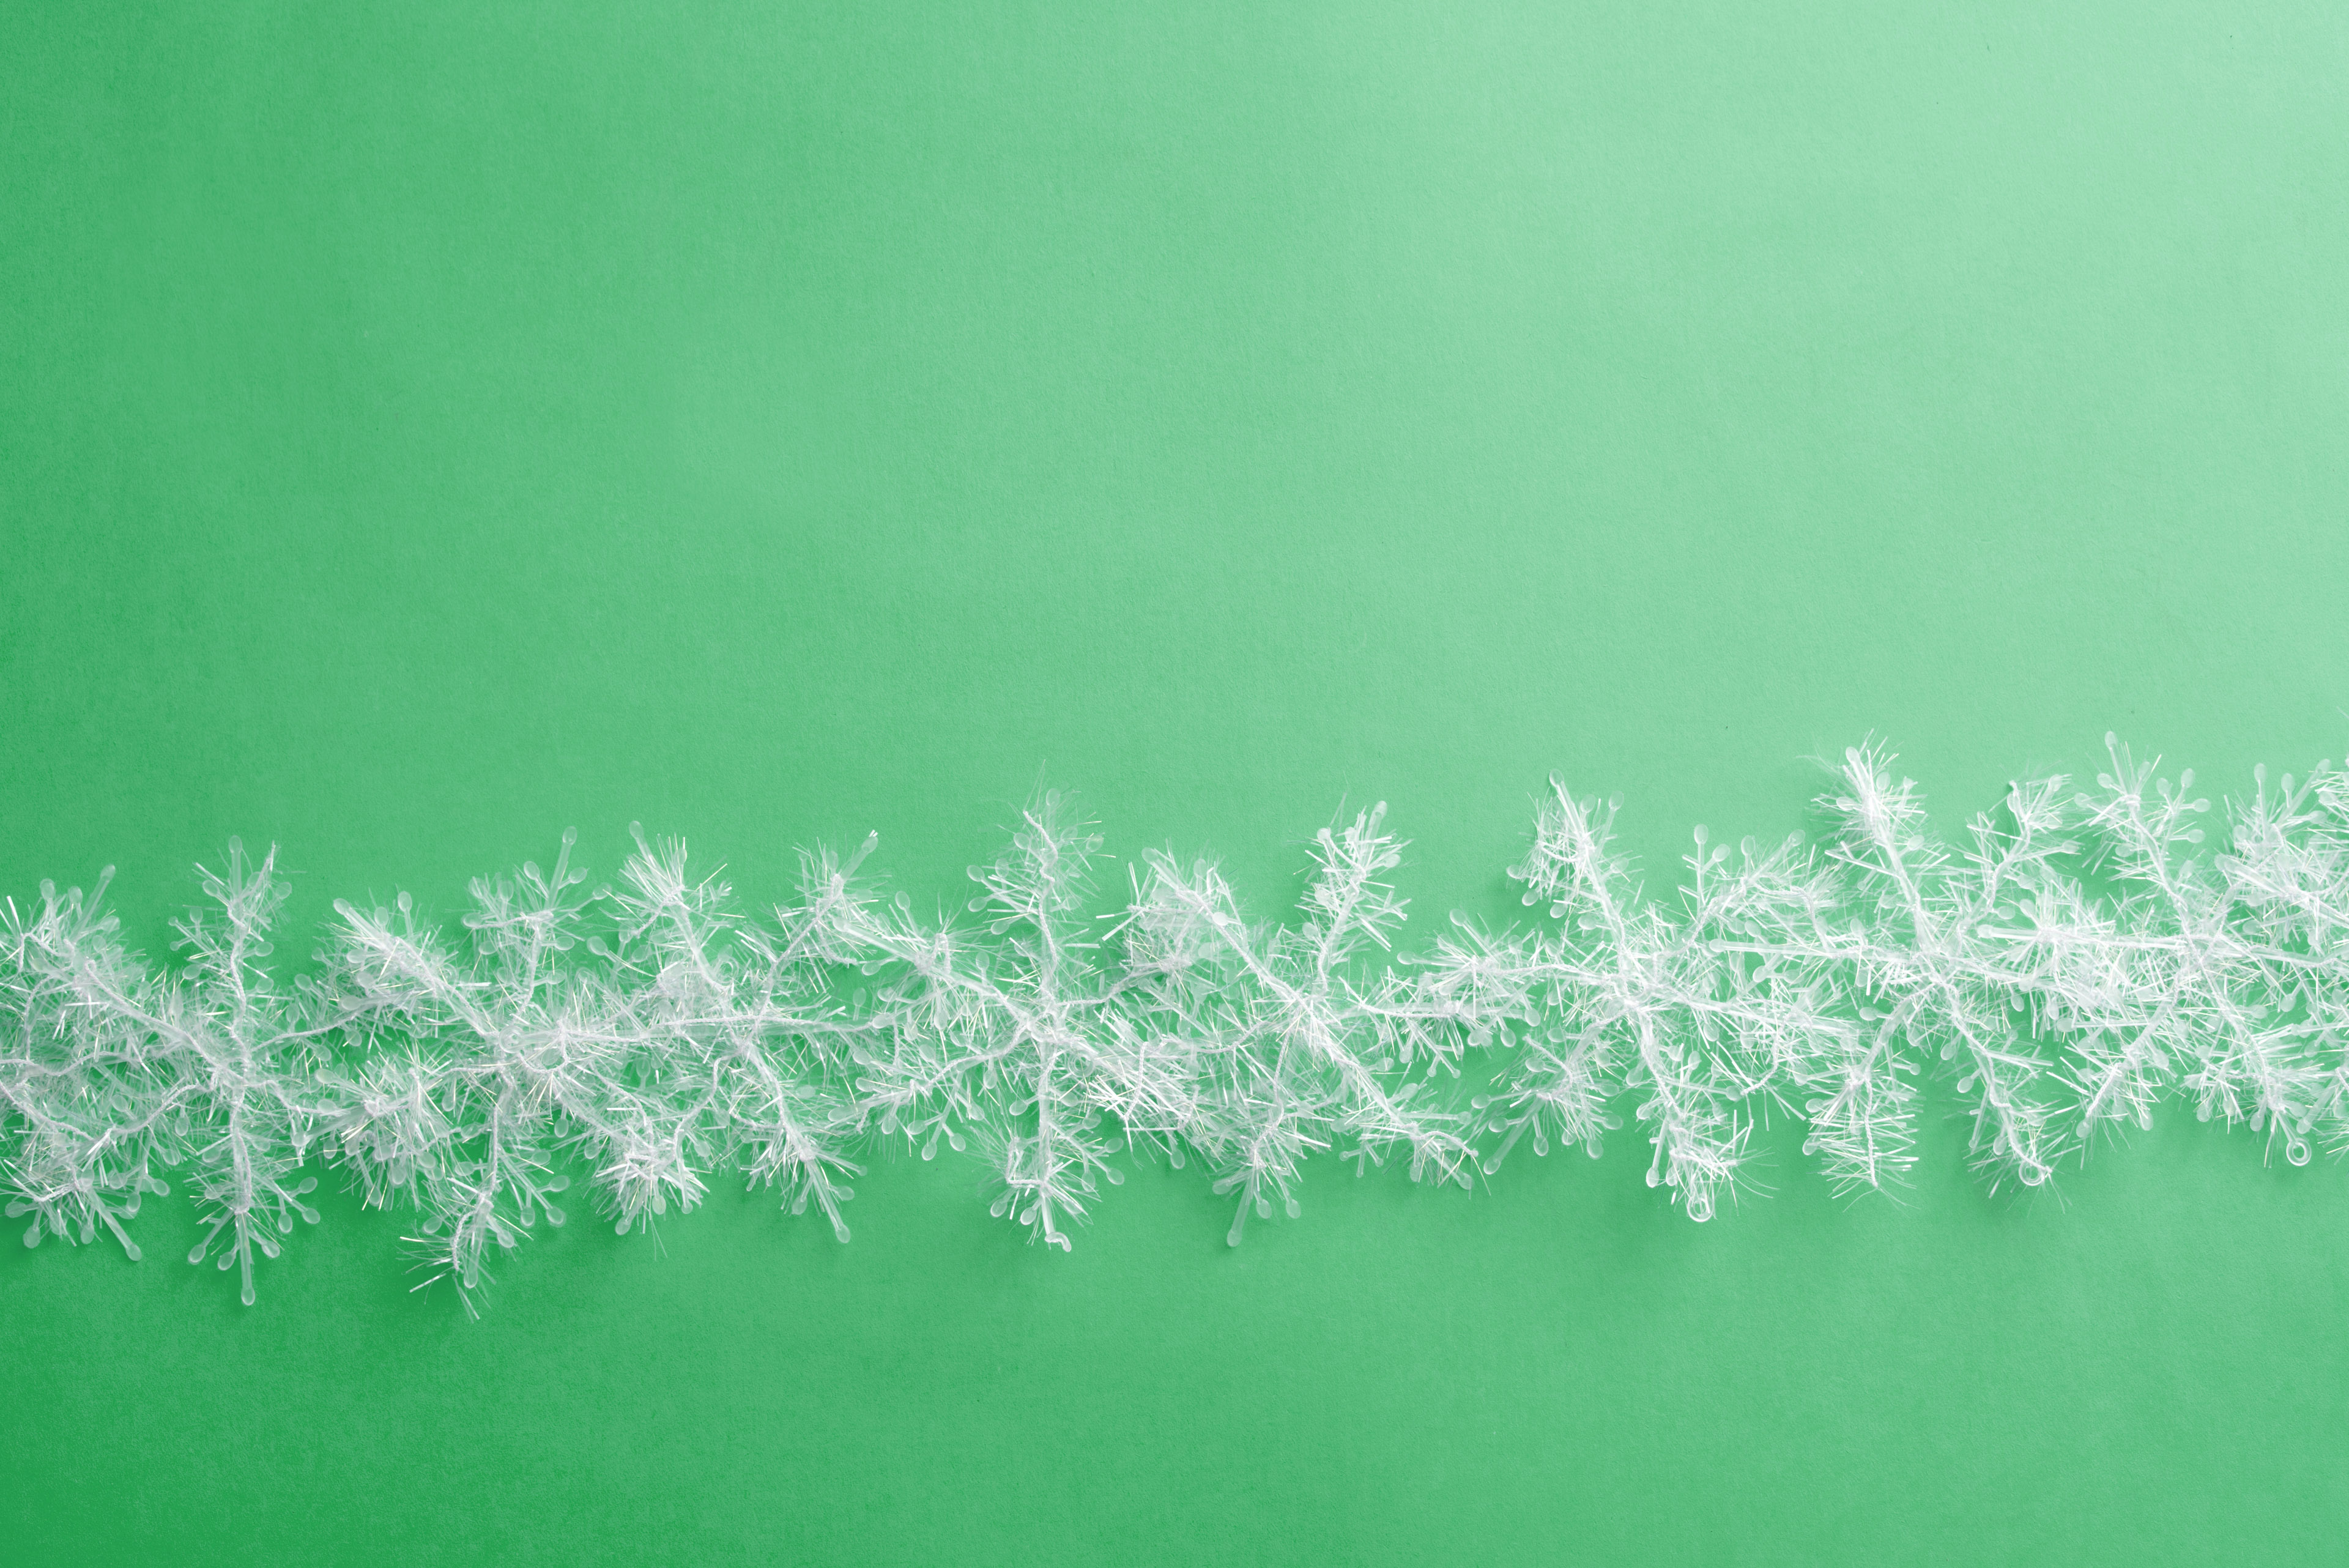 Decorative white Christmas snowflake wreath isolated on a plain green background.